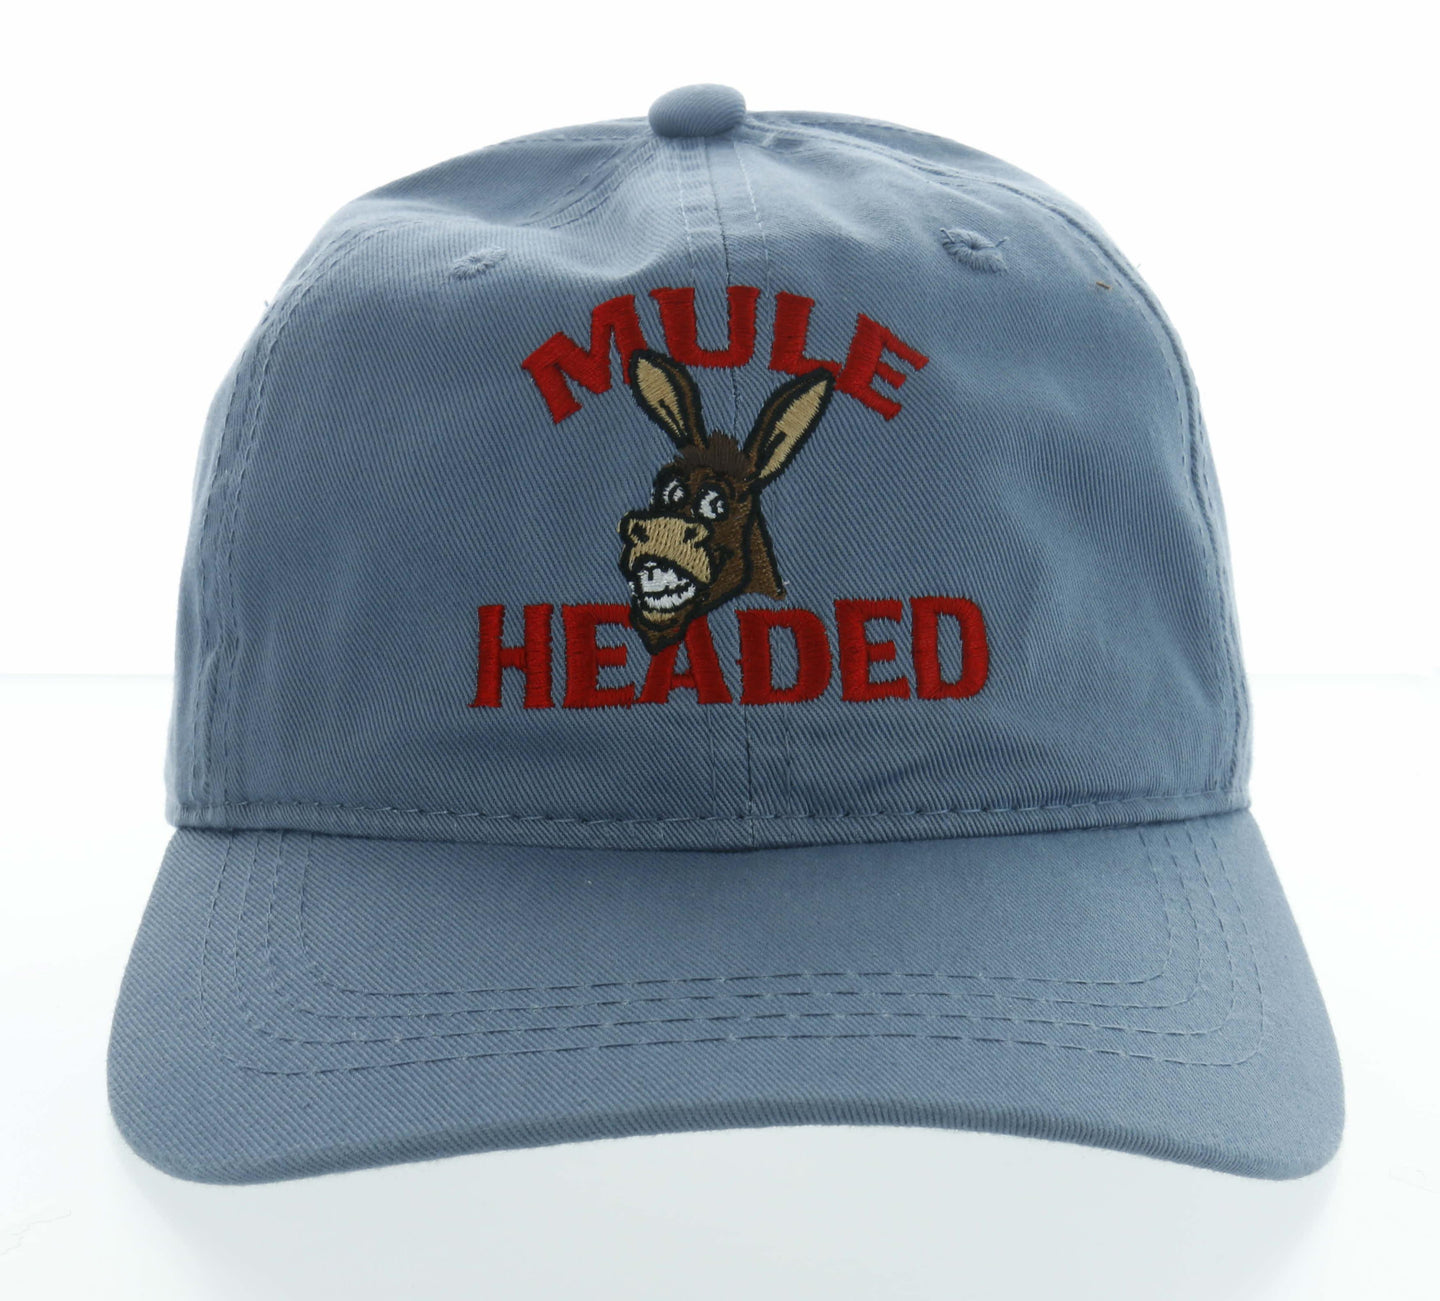 Hat - Mule headed hat